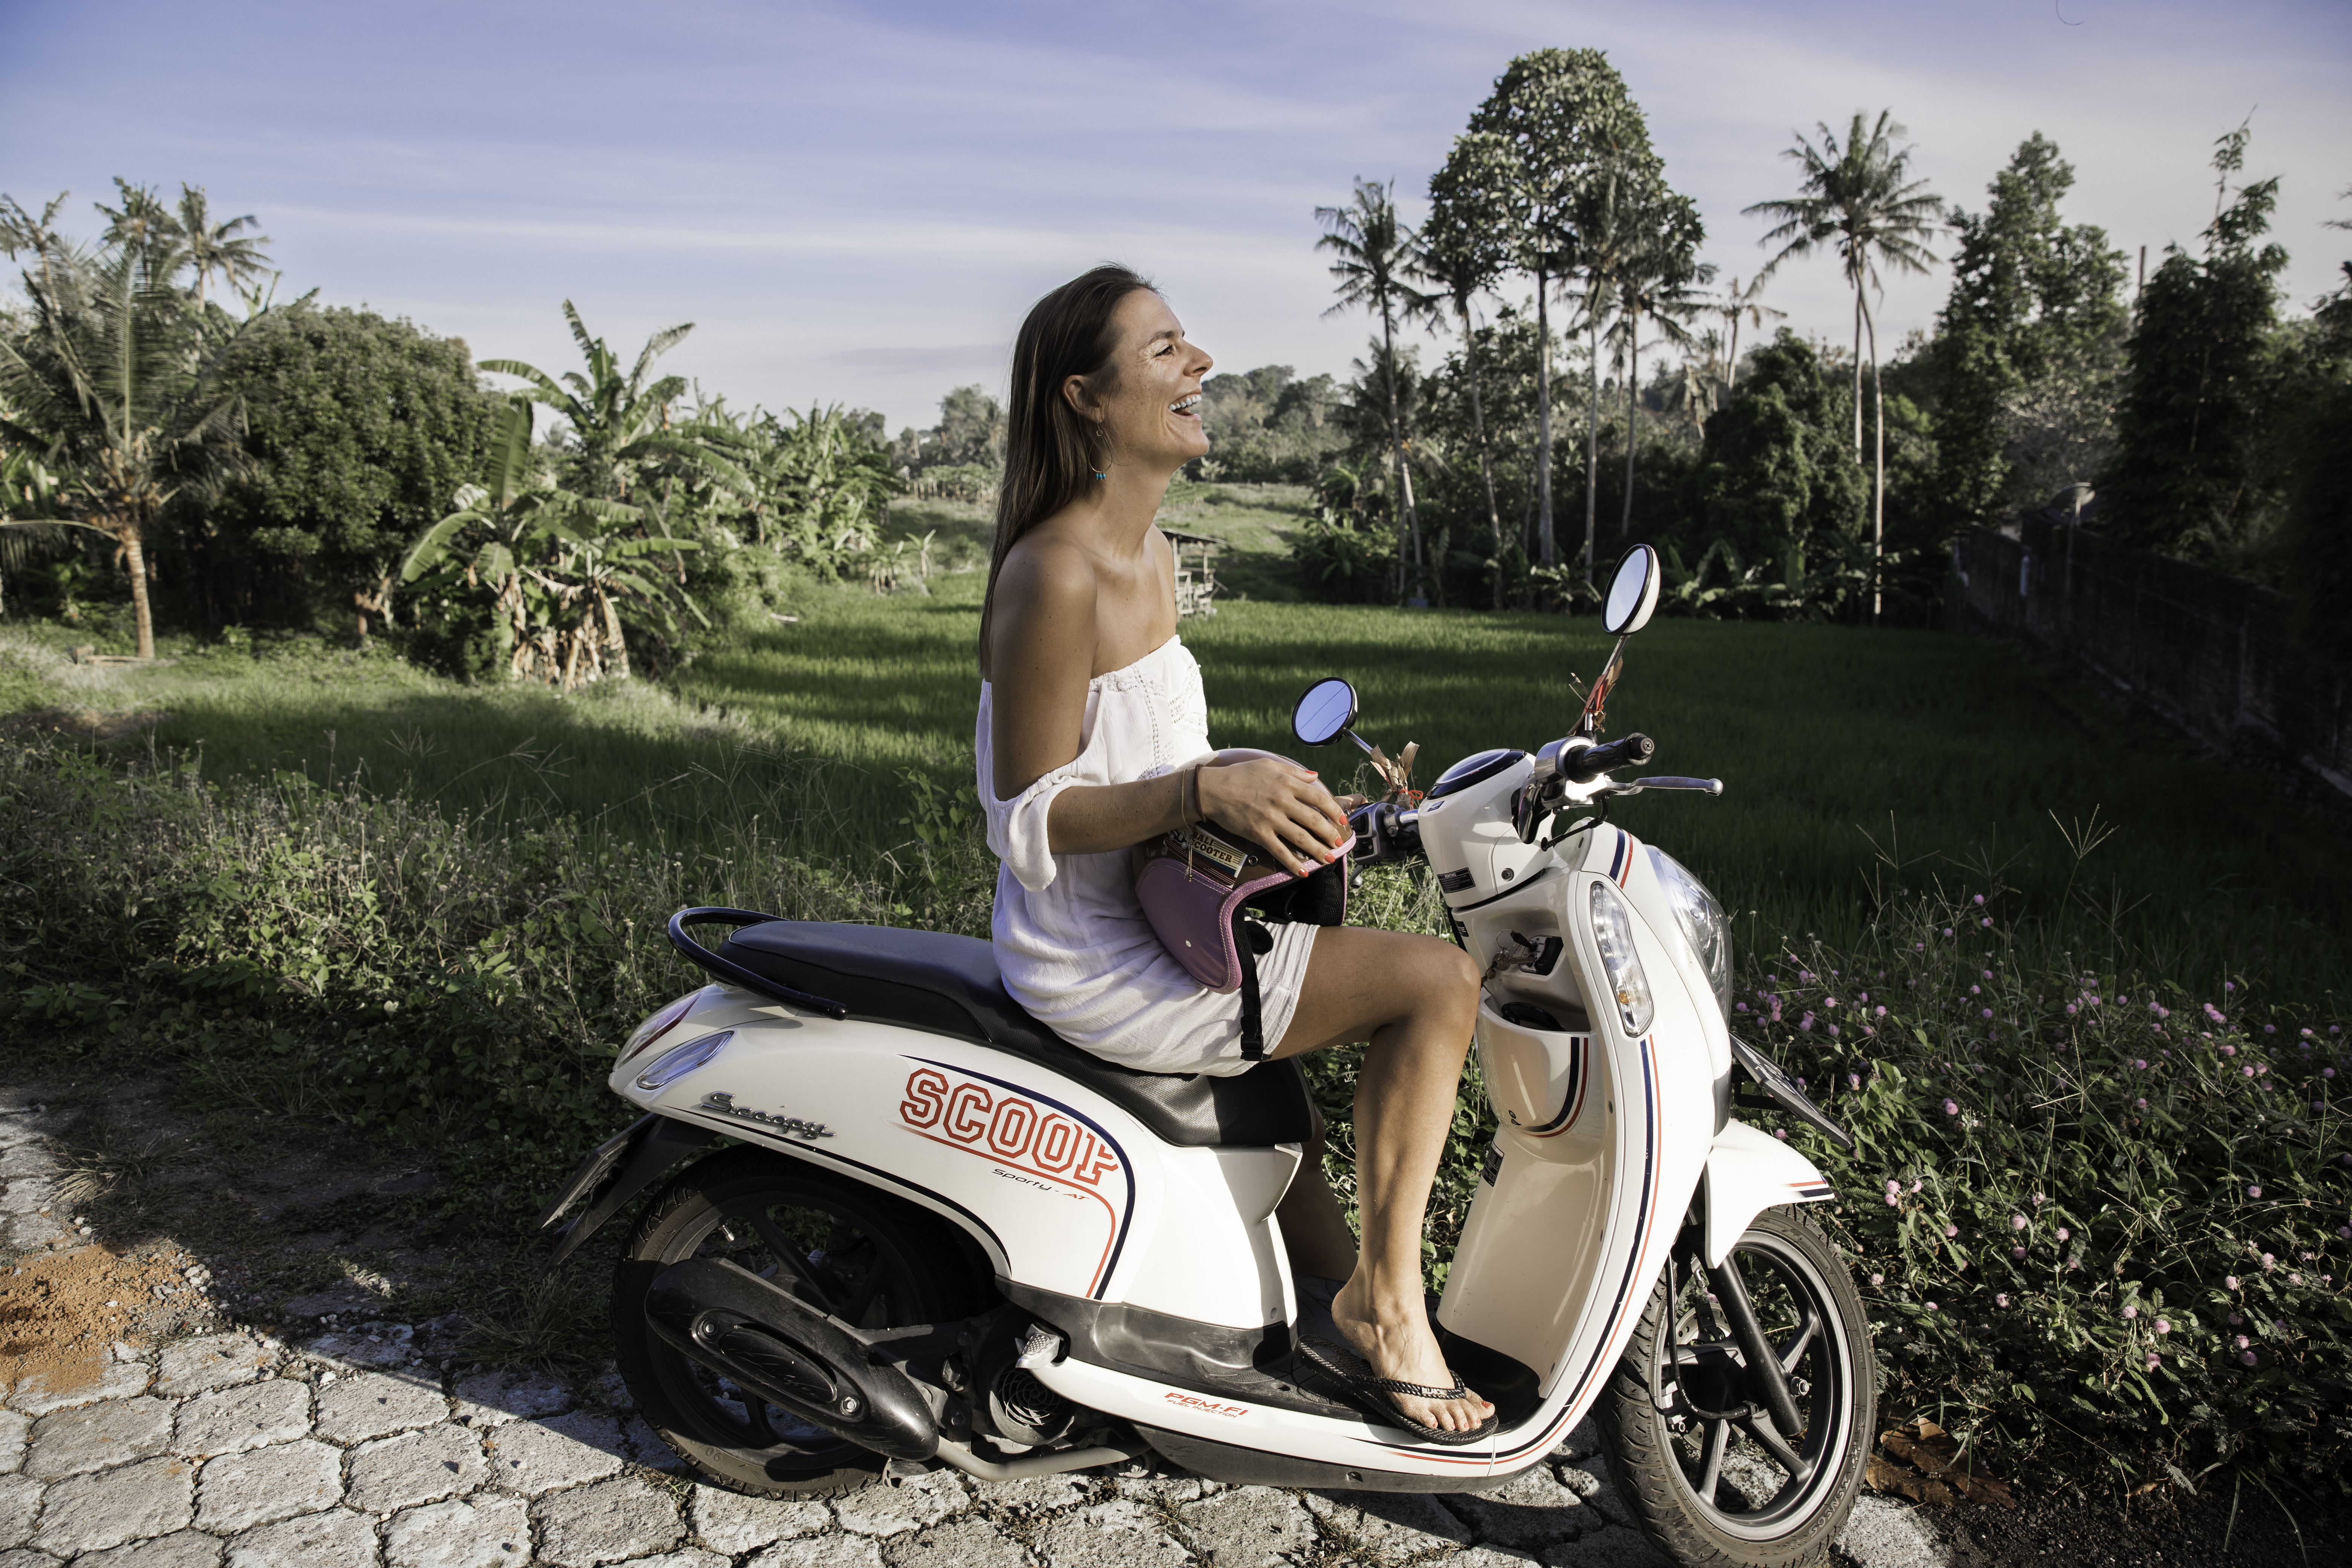 SCOOTER FREEDOM DREAMLIFE